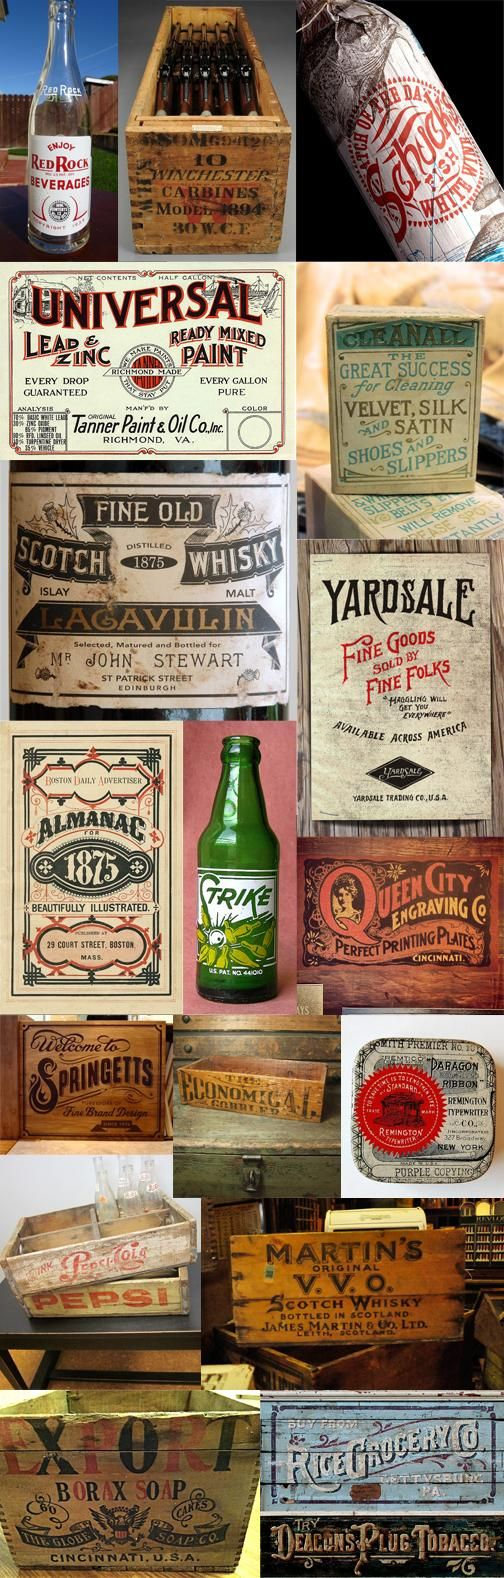 Wetherbee Beverage Co. - image 1 - student project